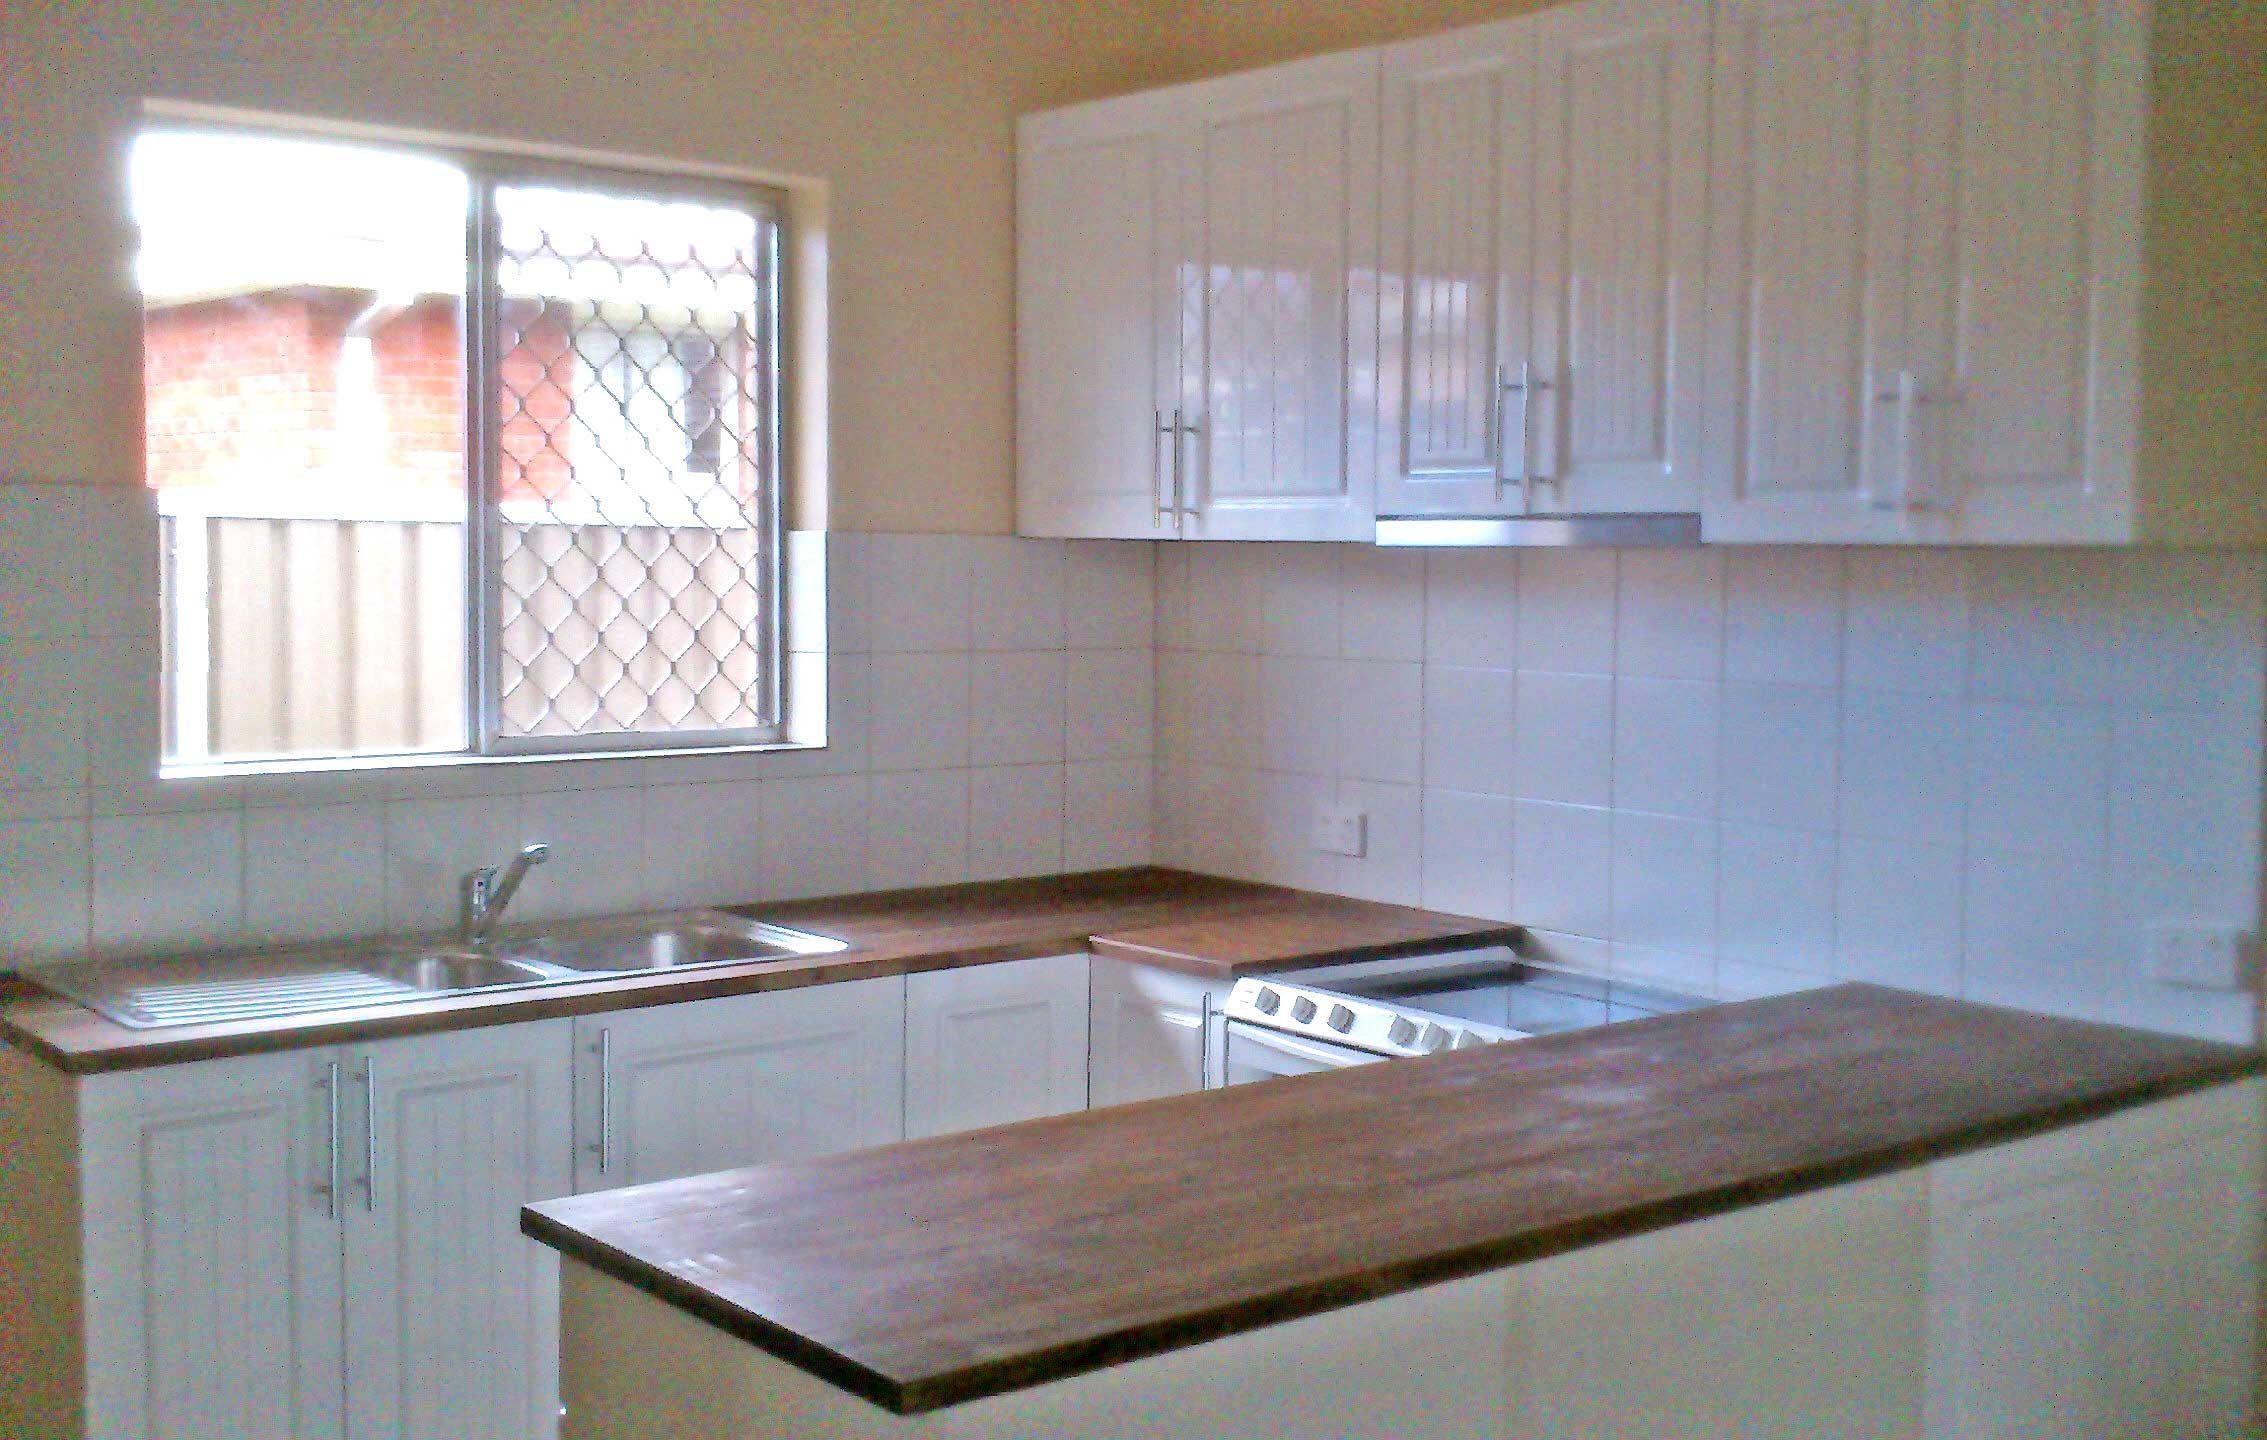 Bathurst handyman handyman bathurst bathurst handyman for Installing kitchen cabinets